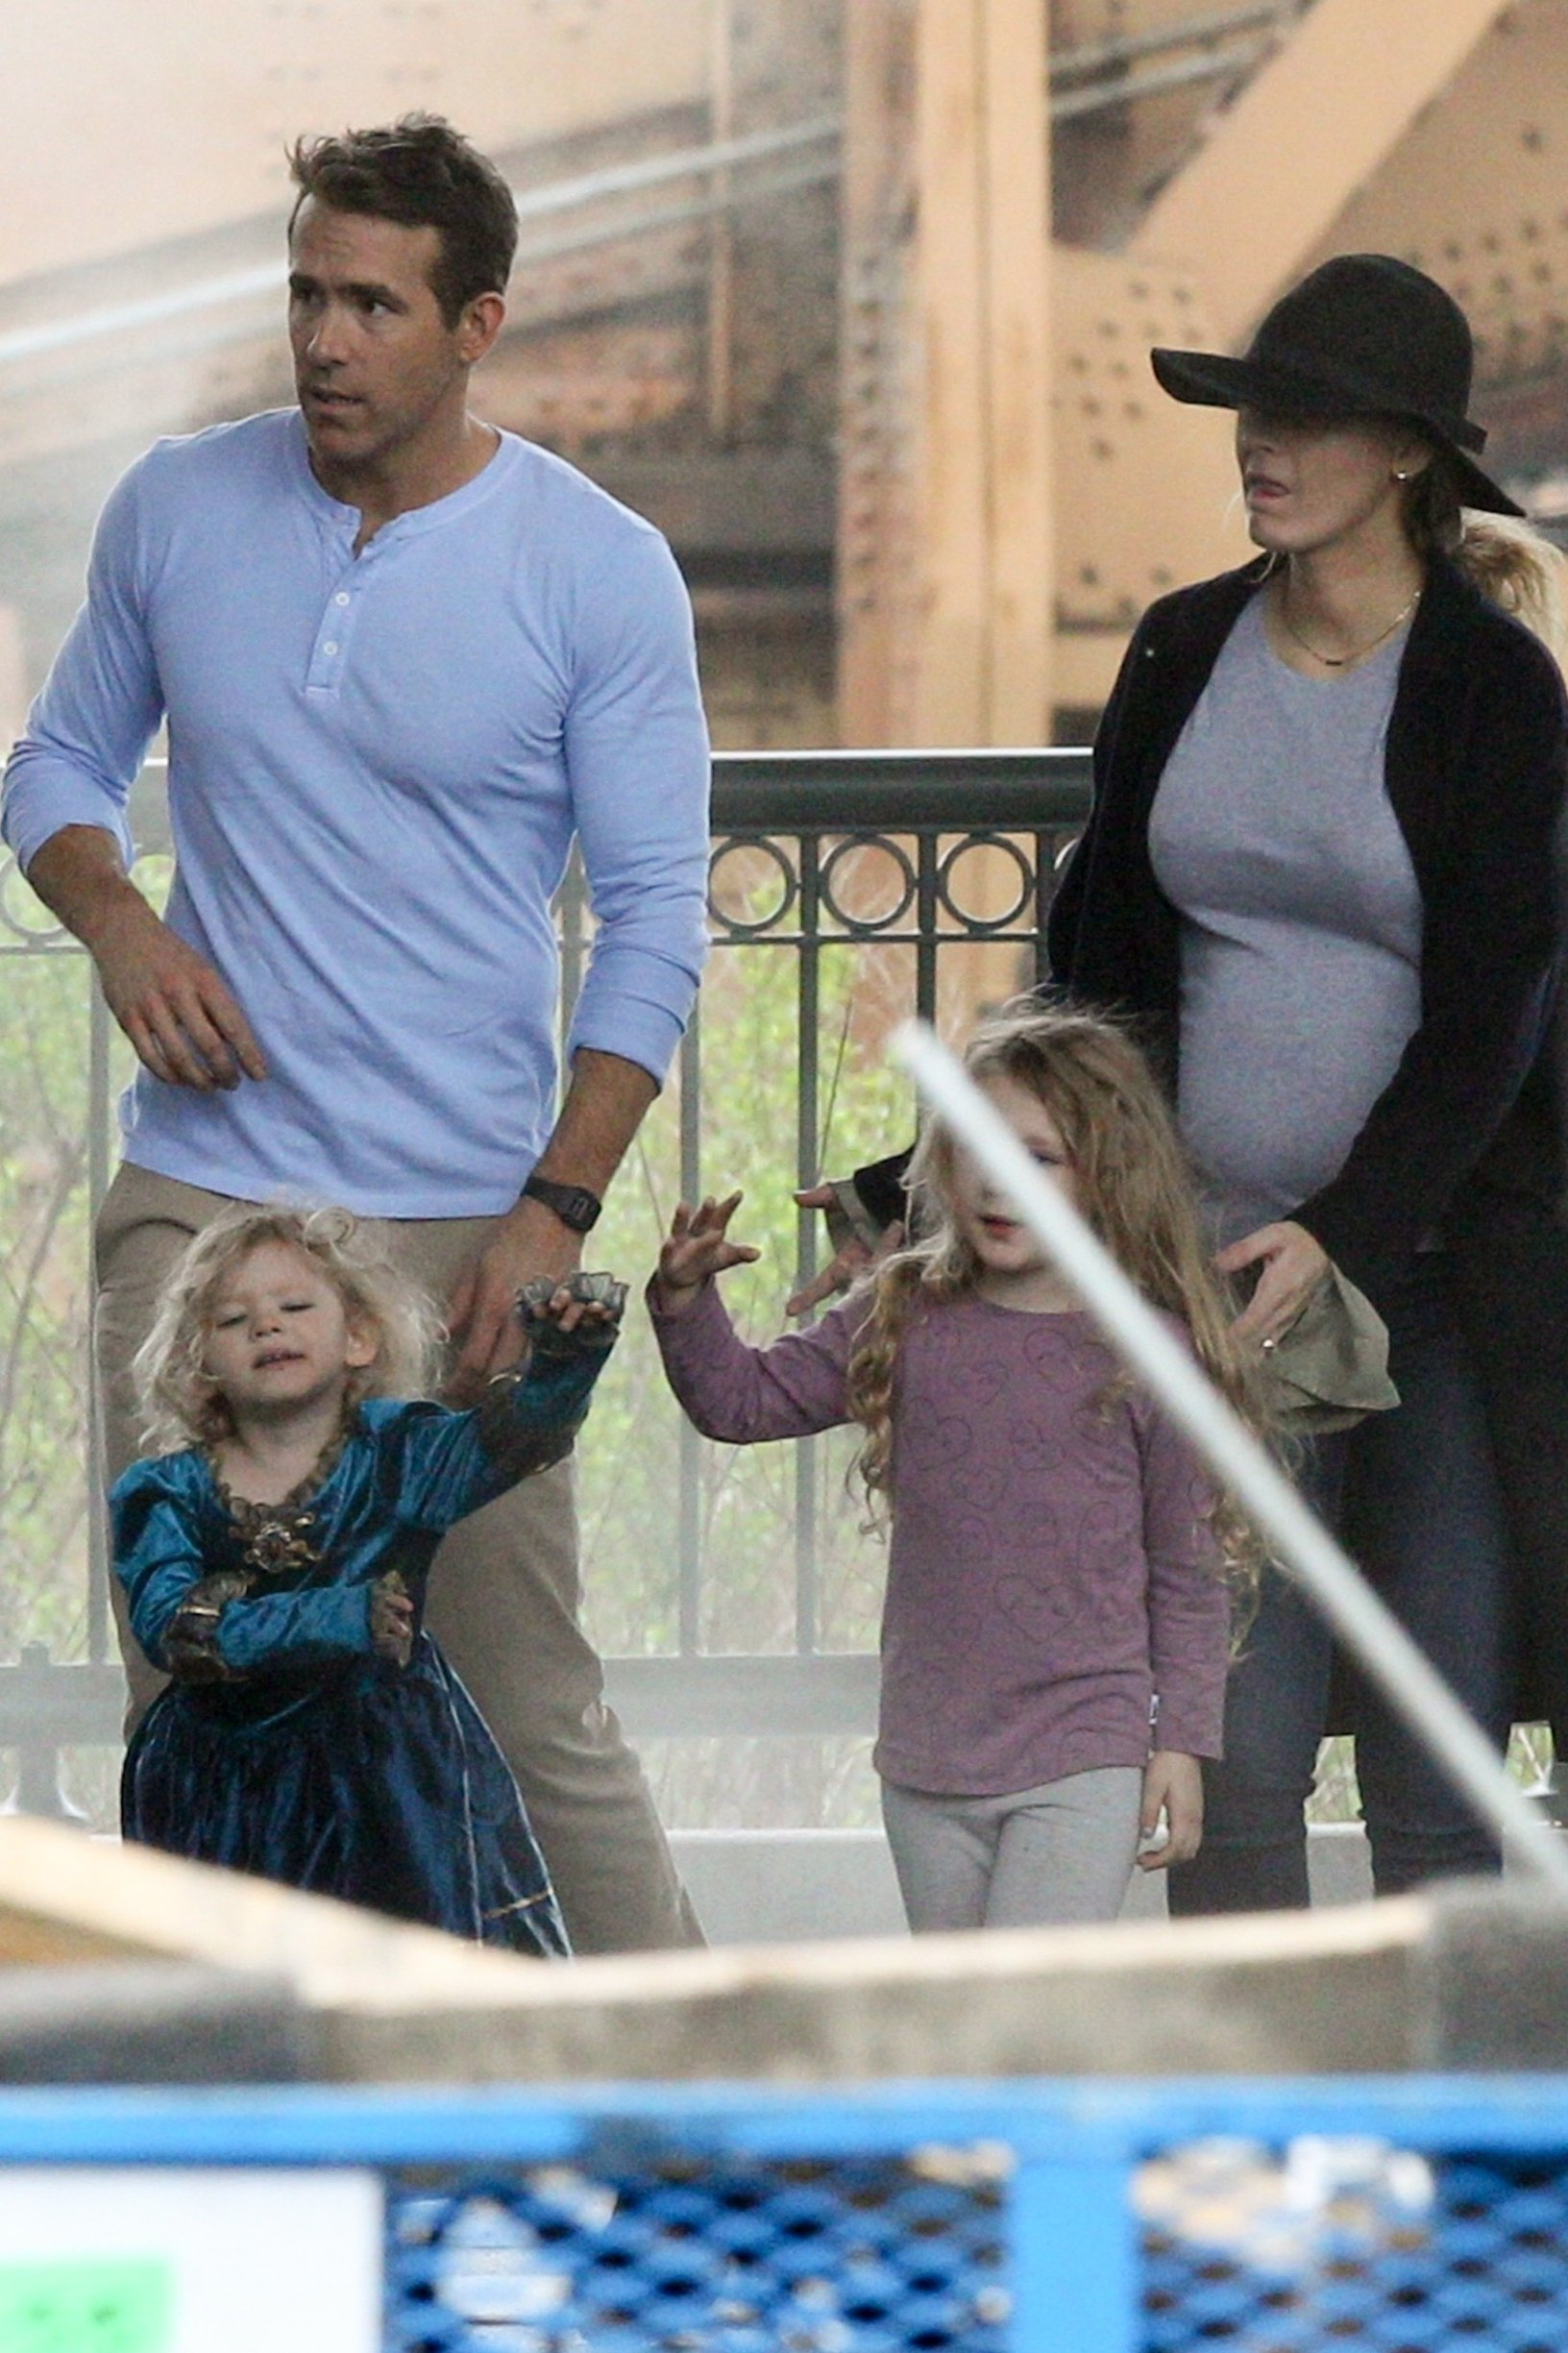 *EXCLUSIVE* Boston, MA  - Pregnant Blake Lively brings her daughters Inez and James to visit Ryan Reynolds on the set of 'Free Guy' in Boston, MA  BACKGRID USA 25 MAY 2019, Image: 437025979, License: Rights-managed, Restrictions: , Model Release: no, Credit line: Profimedia, Backgrid USA